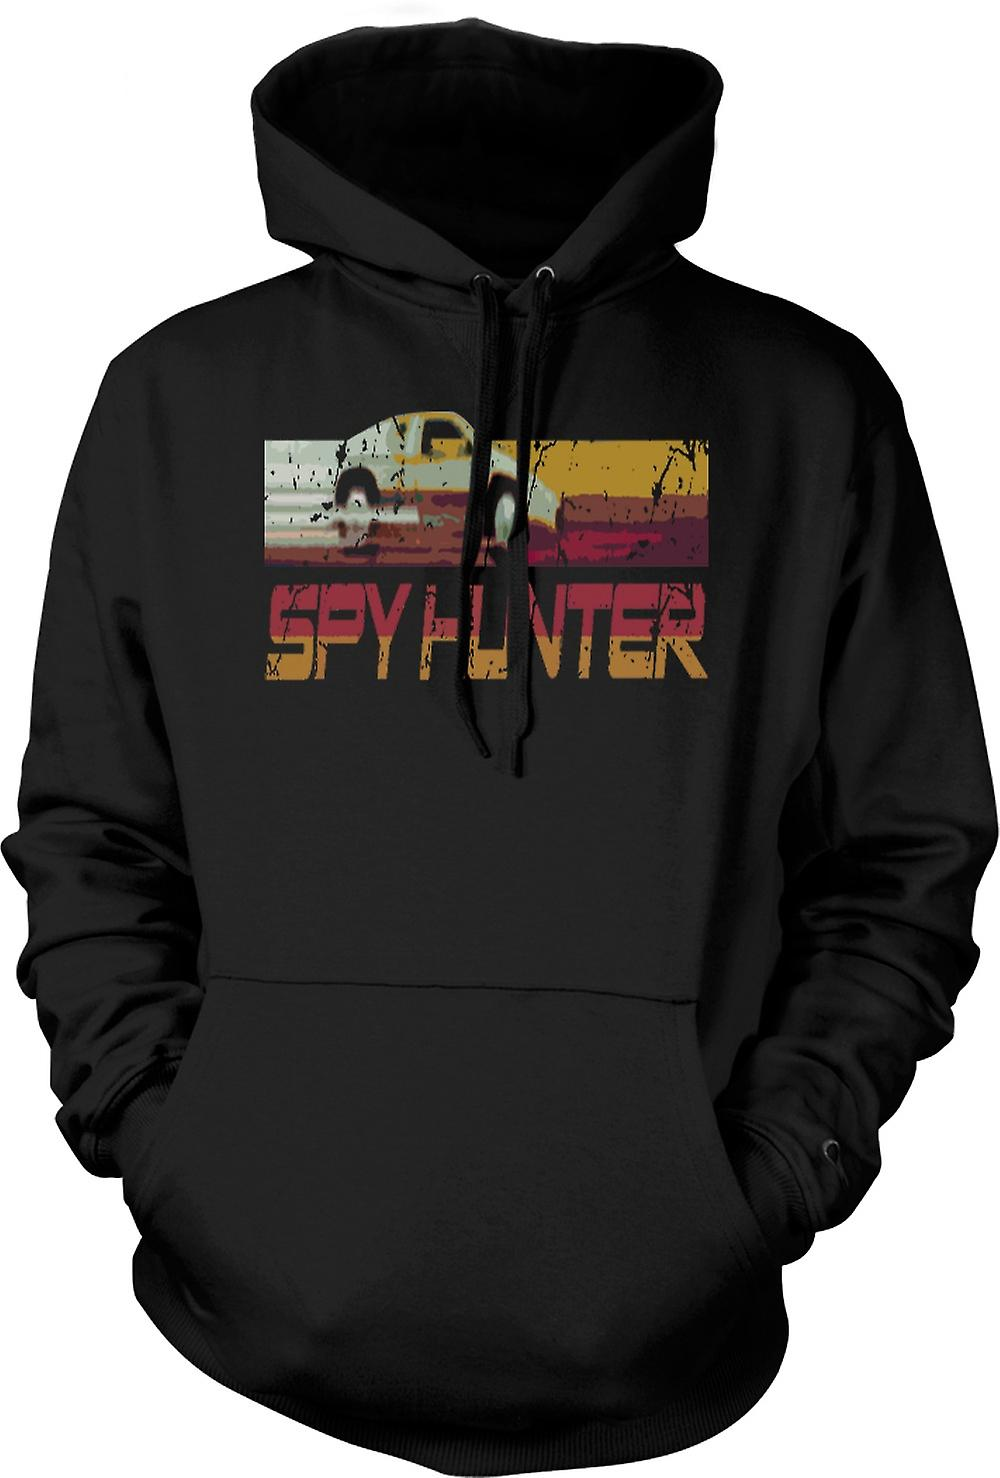 Mens Hoodie - Spyhunter - C64 - Retro Computer Game 0s